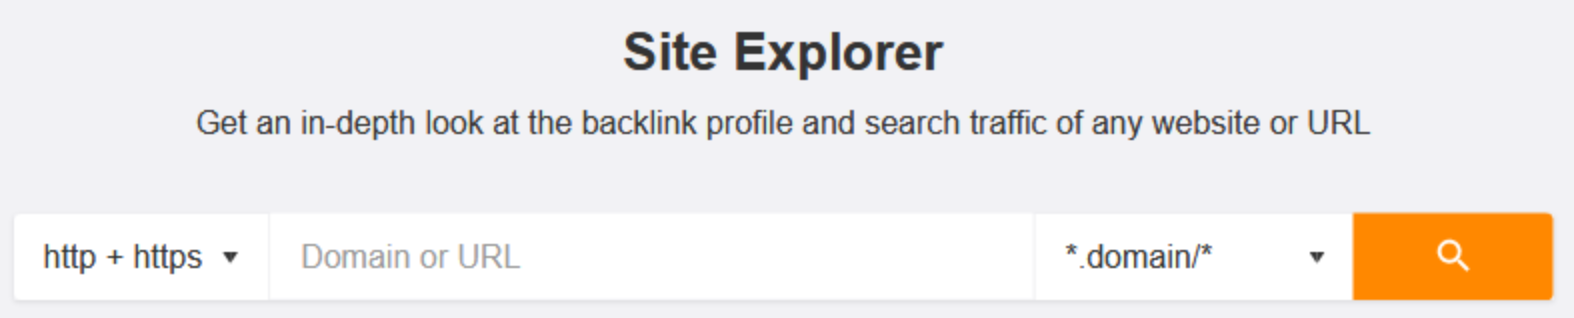 ahrefs site explorer search bar